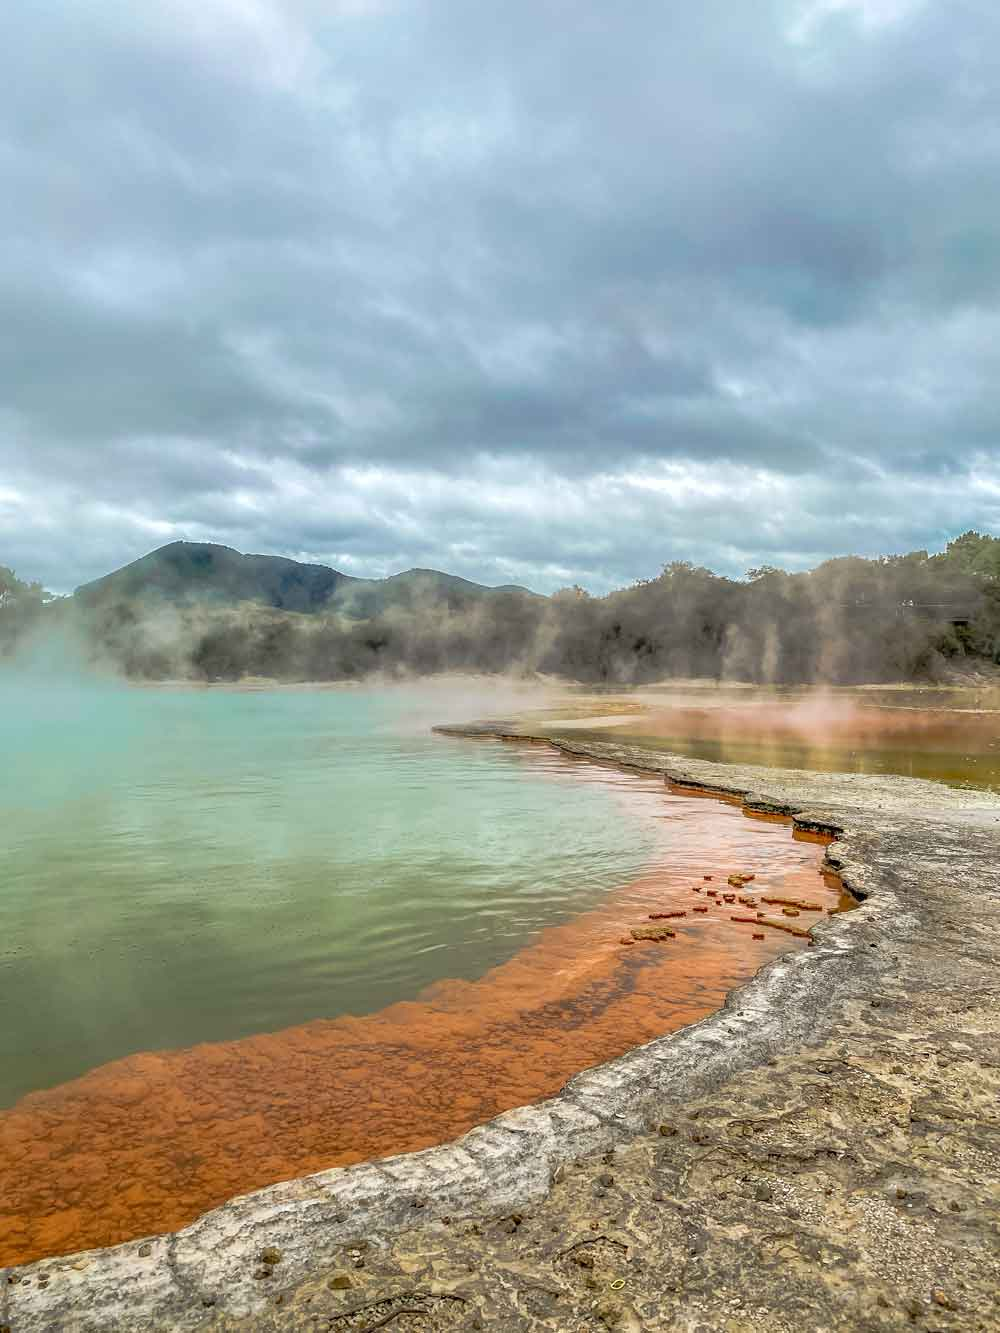 Champagne pool at Waiotapu thermal wonderland